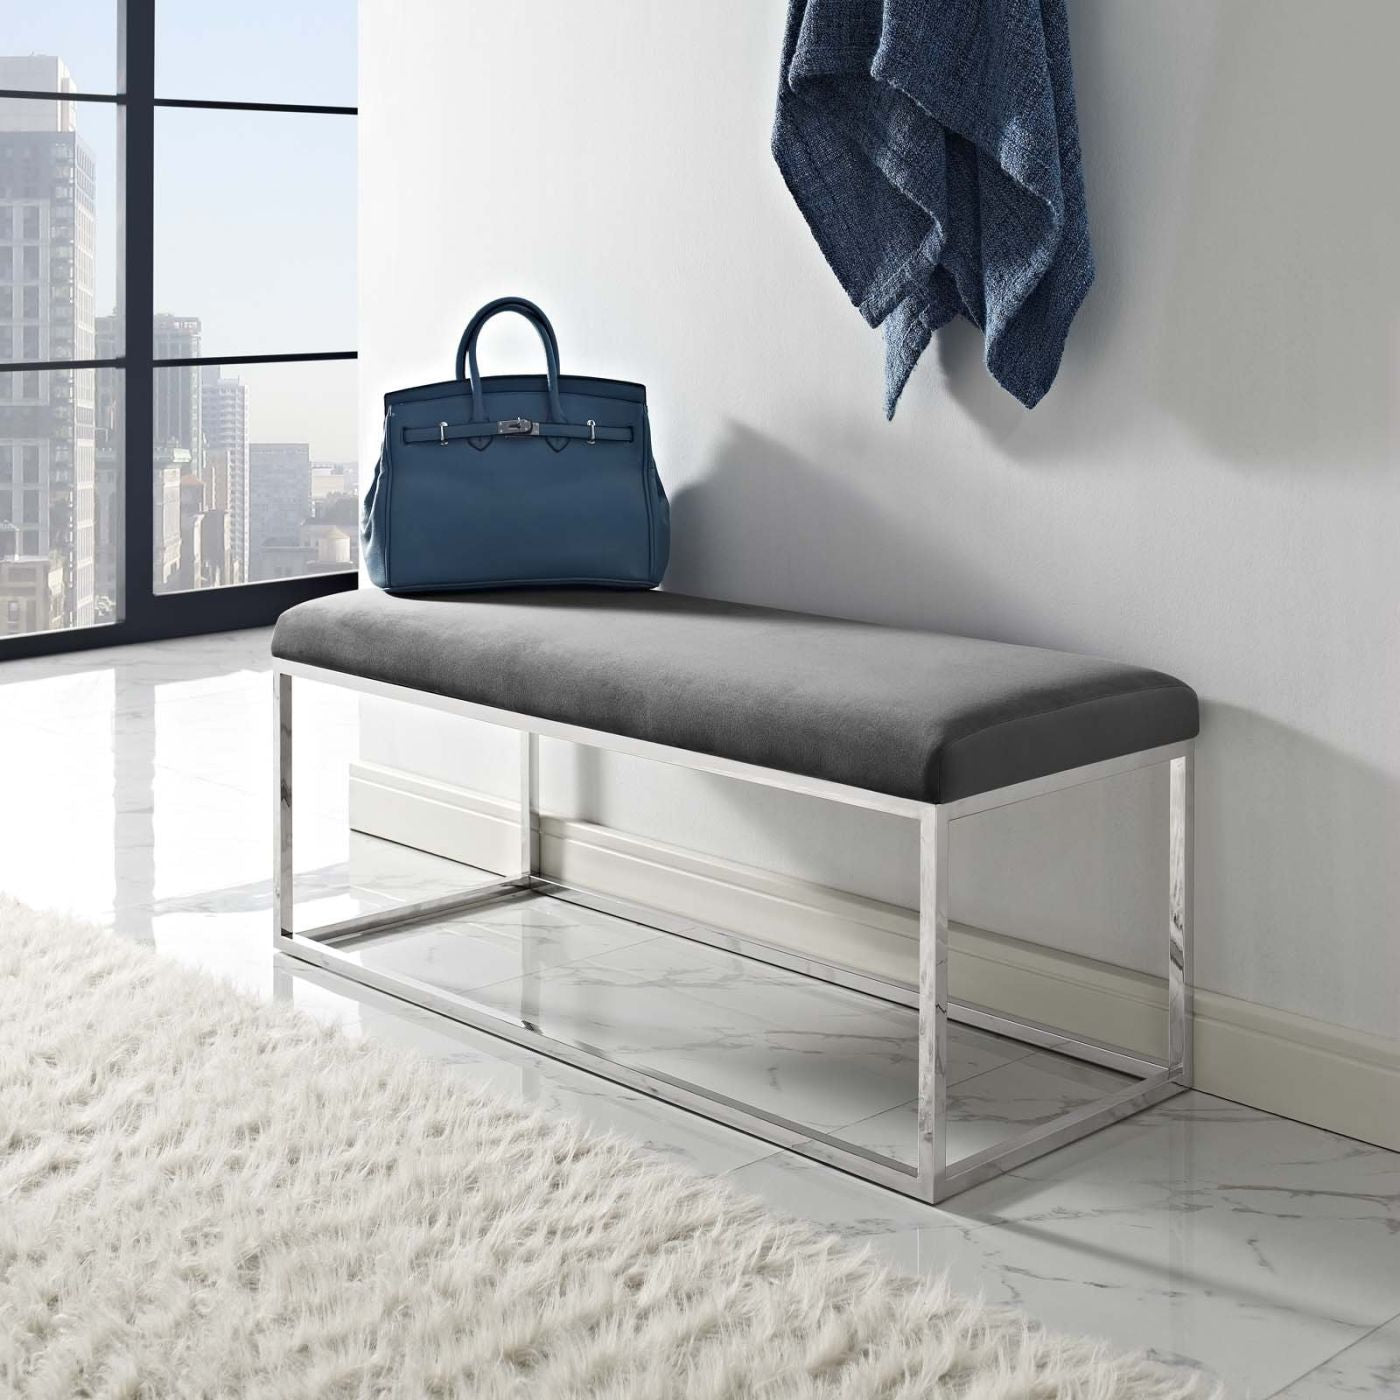 Gaze Modern Bed Or Living Room Fabric Bench by Modway | EEI-2869-SLV-GRY